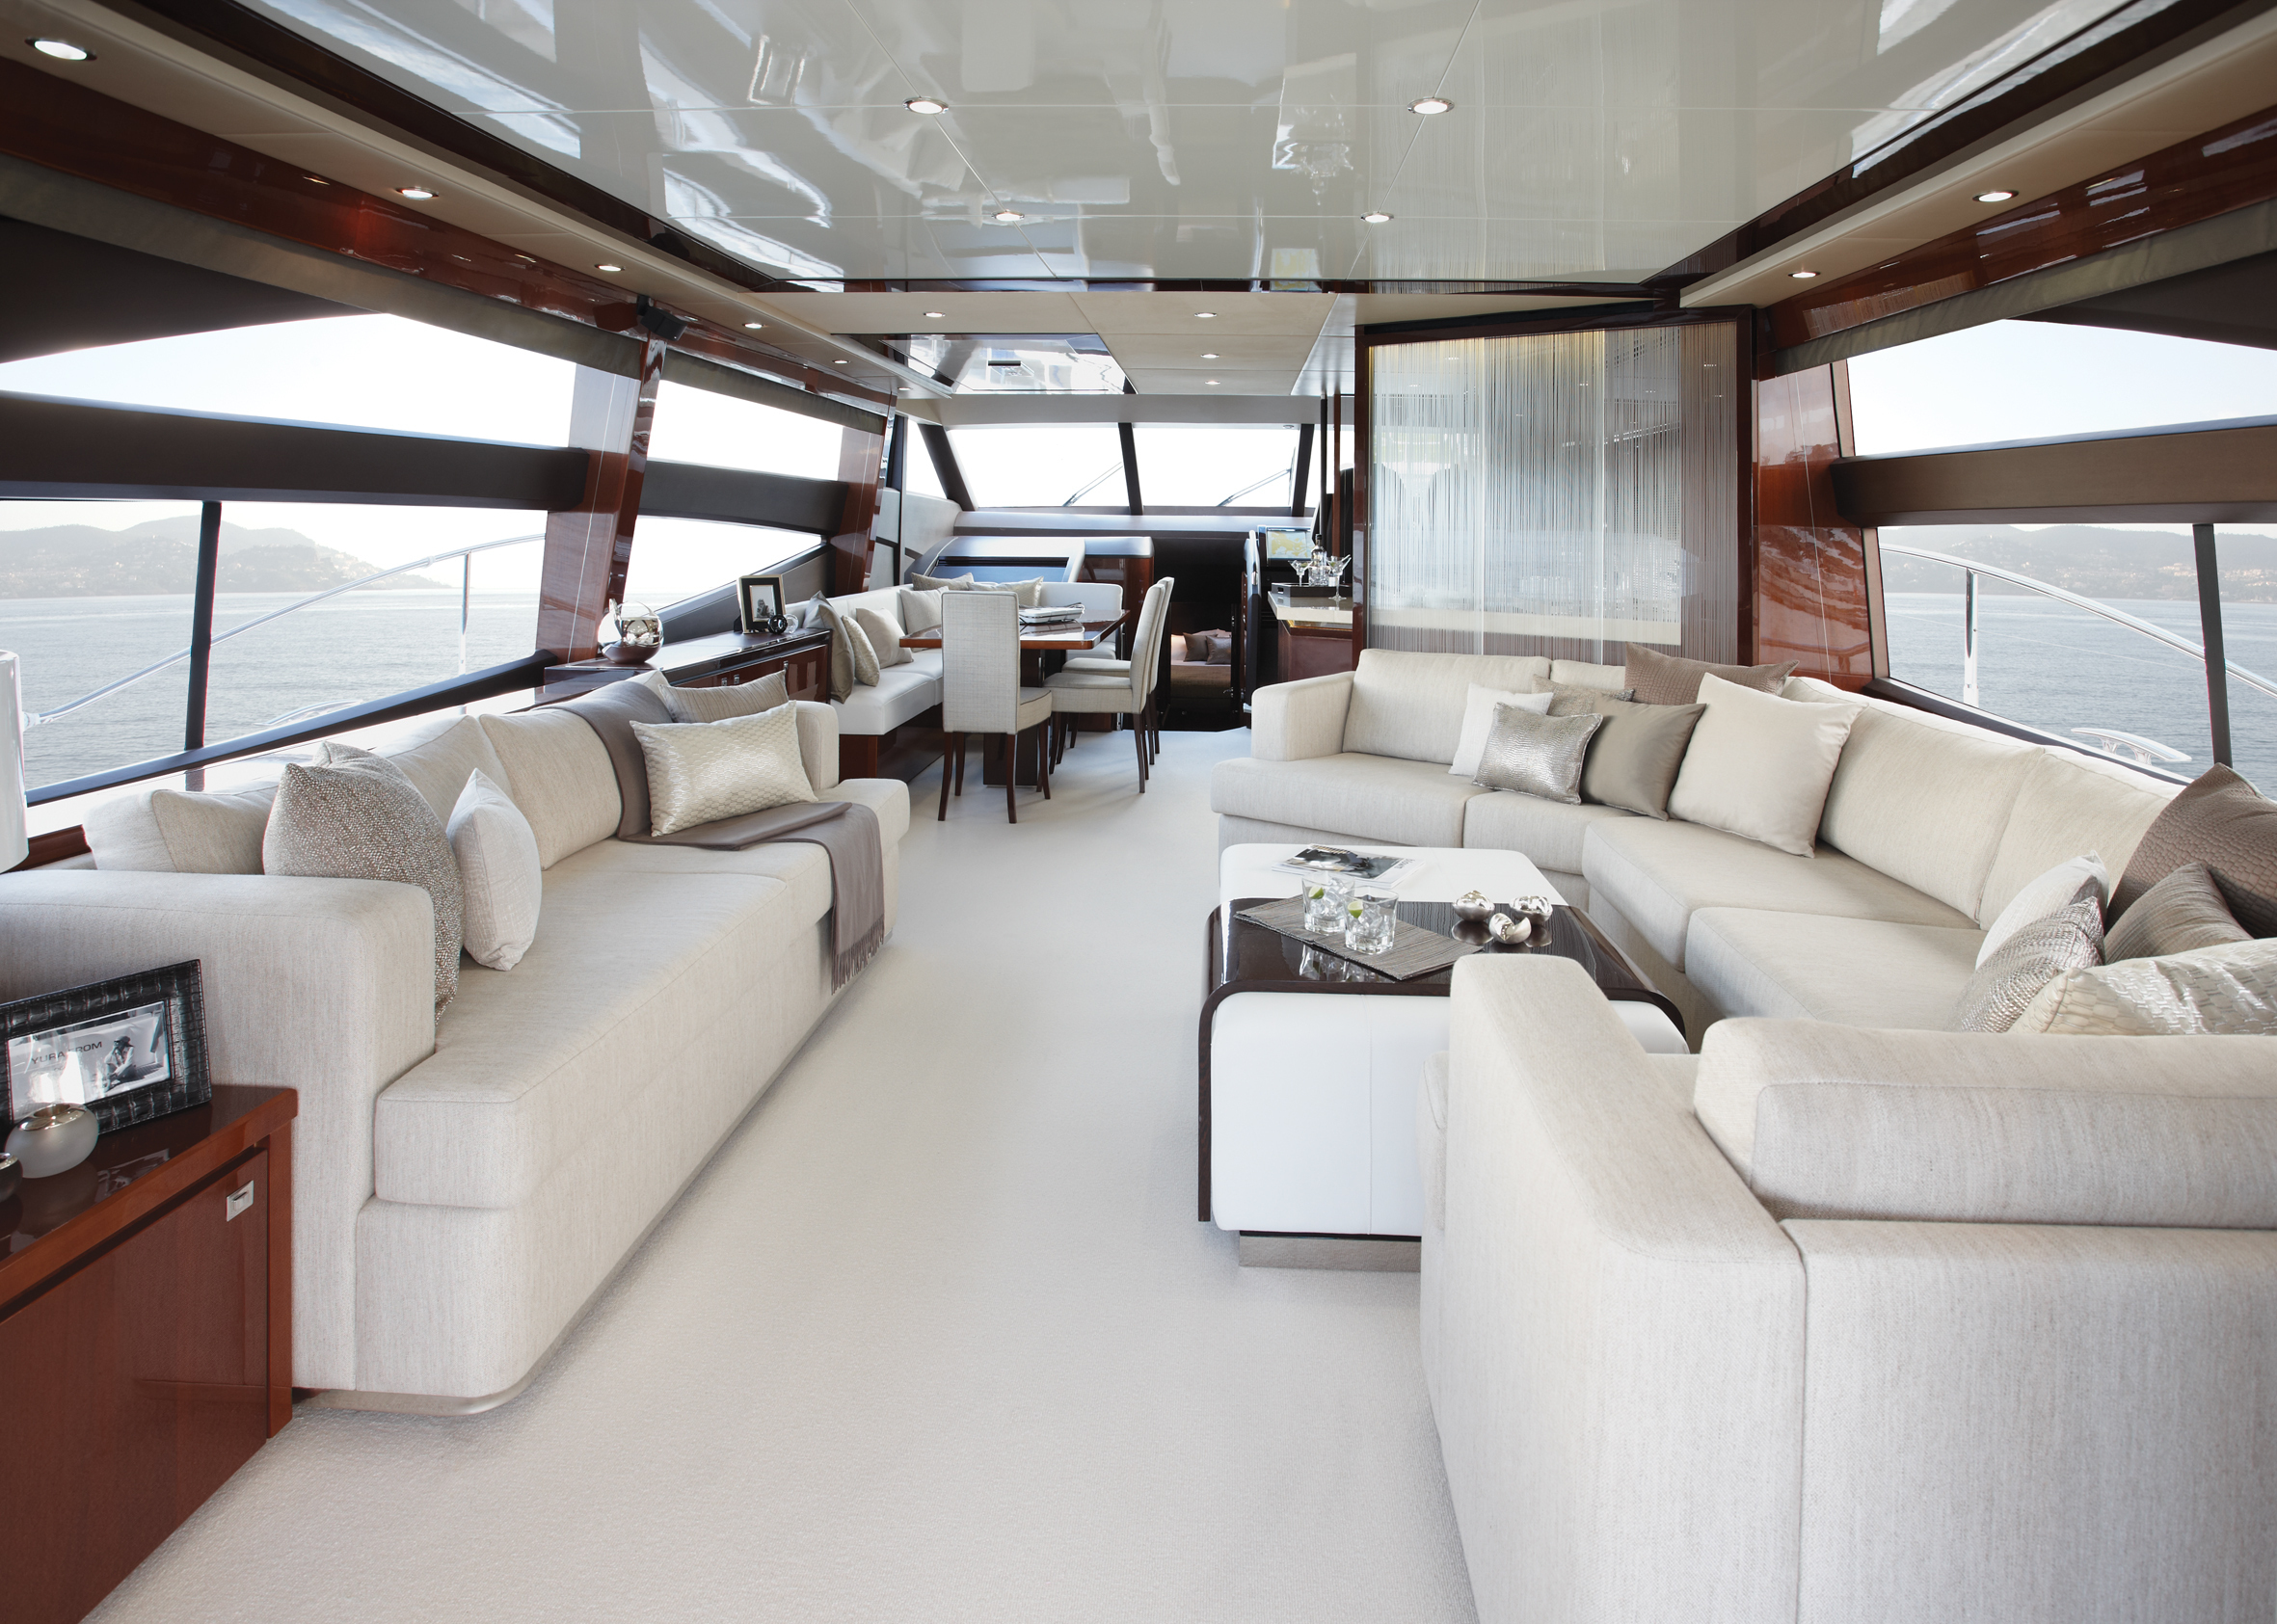 Yacht full hd fond d 39 cran and arri re plan 2362x1685 for Interieur yacht